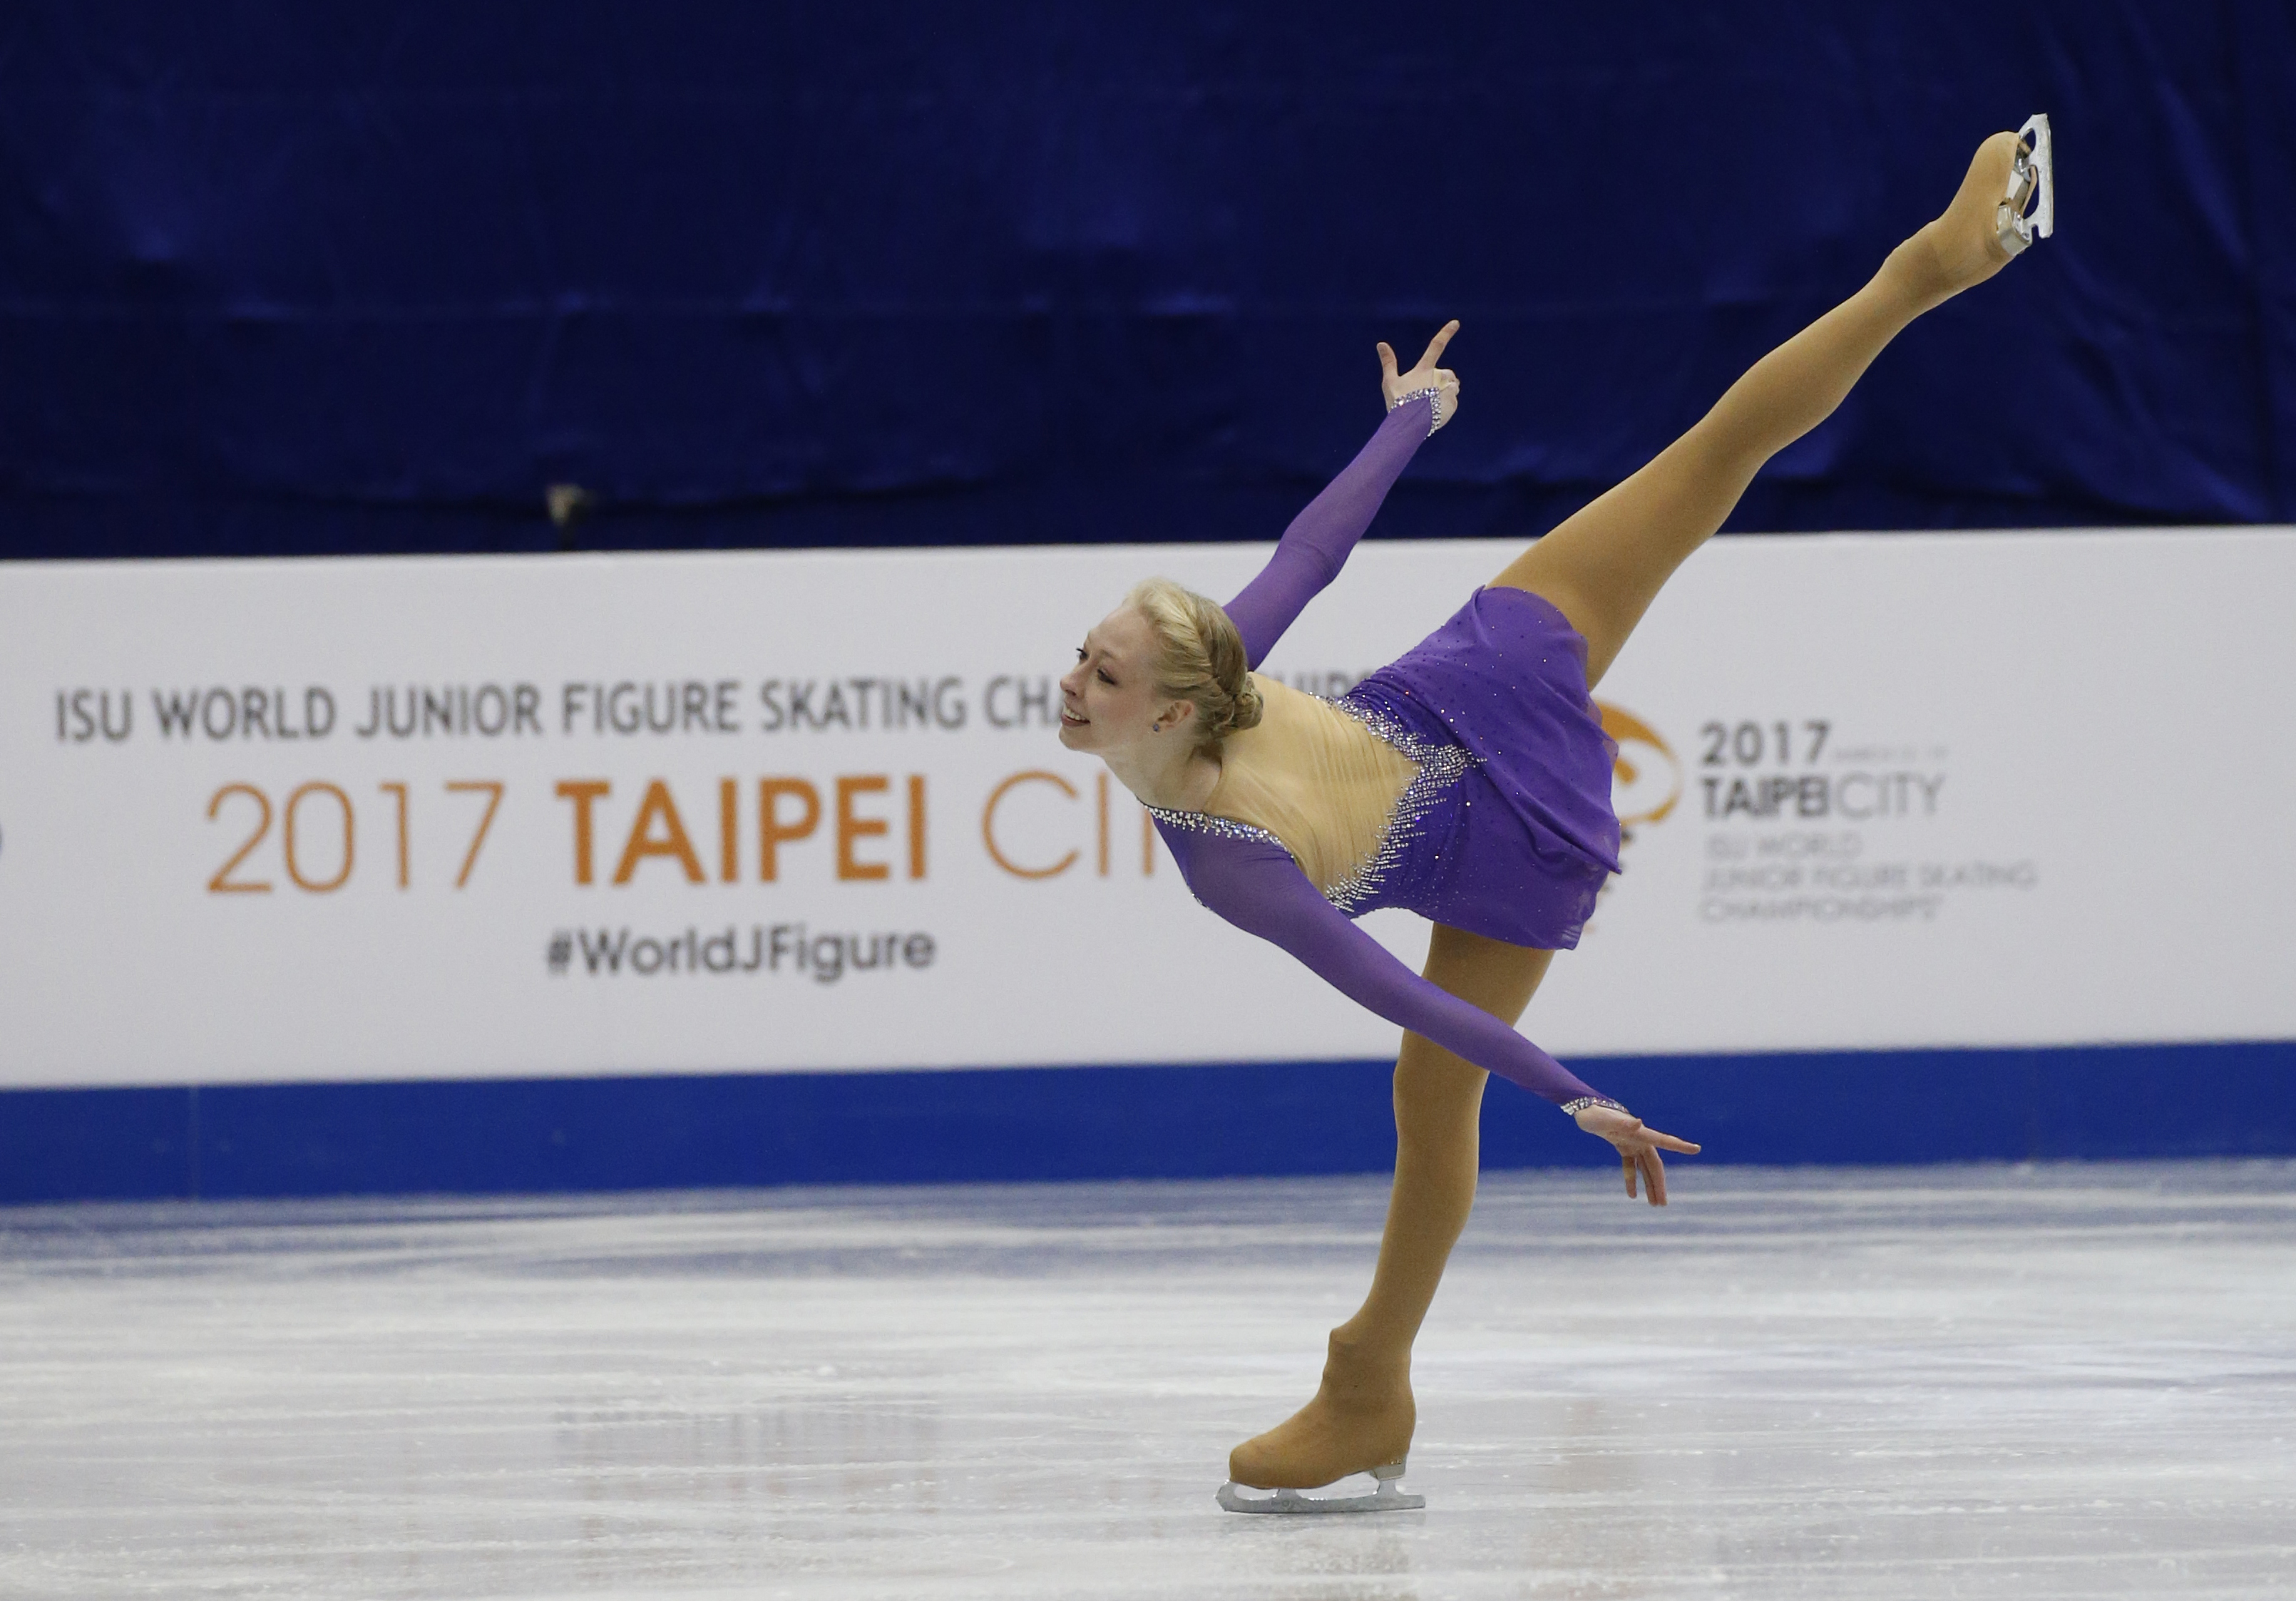 Bradie Tennell performs a spiral during the 2017 World Junior Figure Skating Championships in Taipei City, Taiwan.